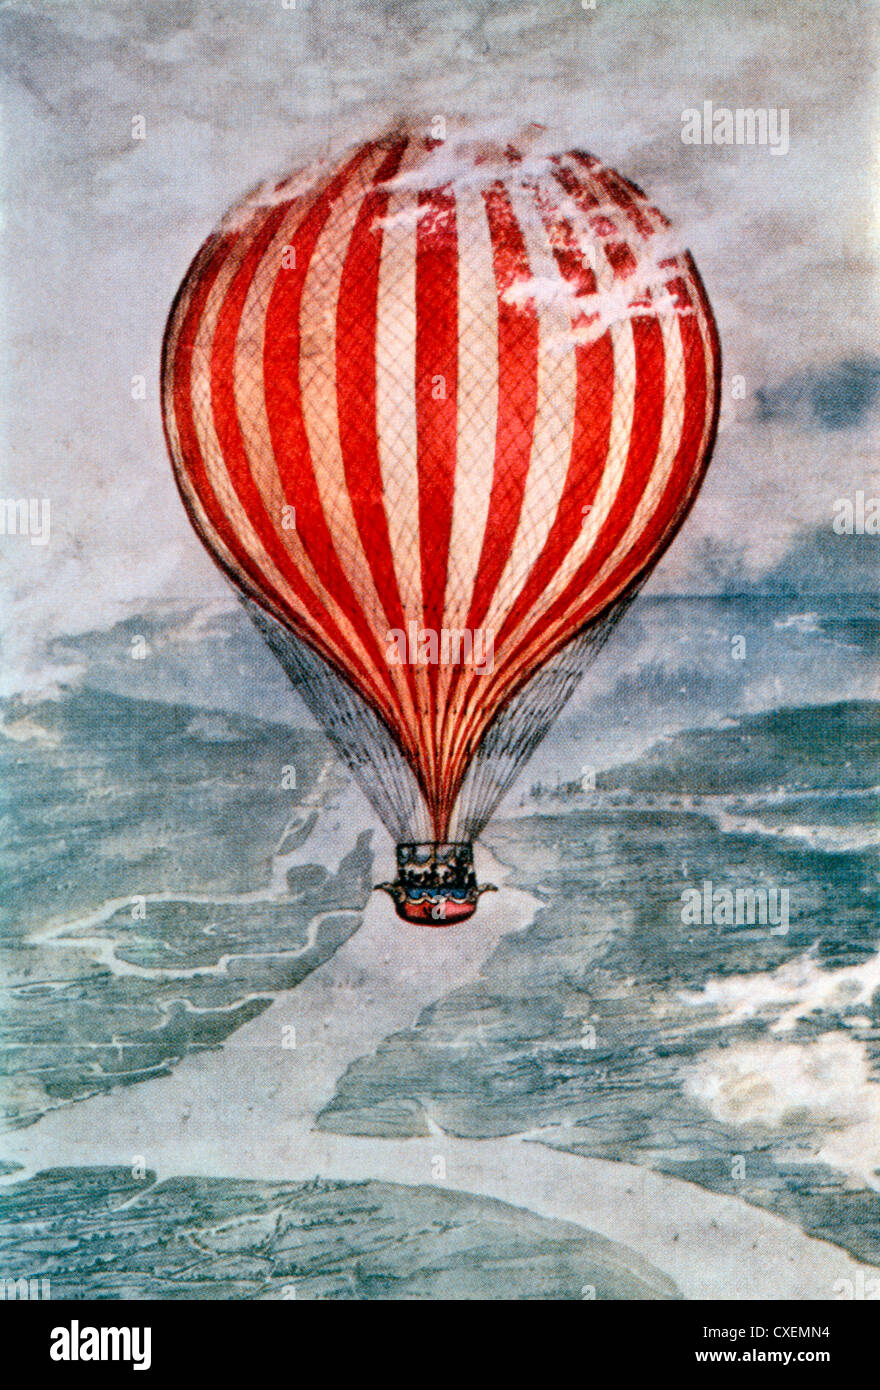 Charles Green's Balloon Trip from London to the Duchy of Nassau in Germany, November 7-8 1836, Illustration - Stock Image